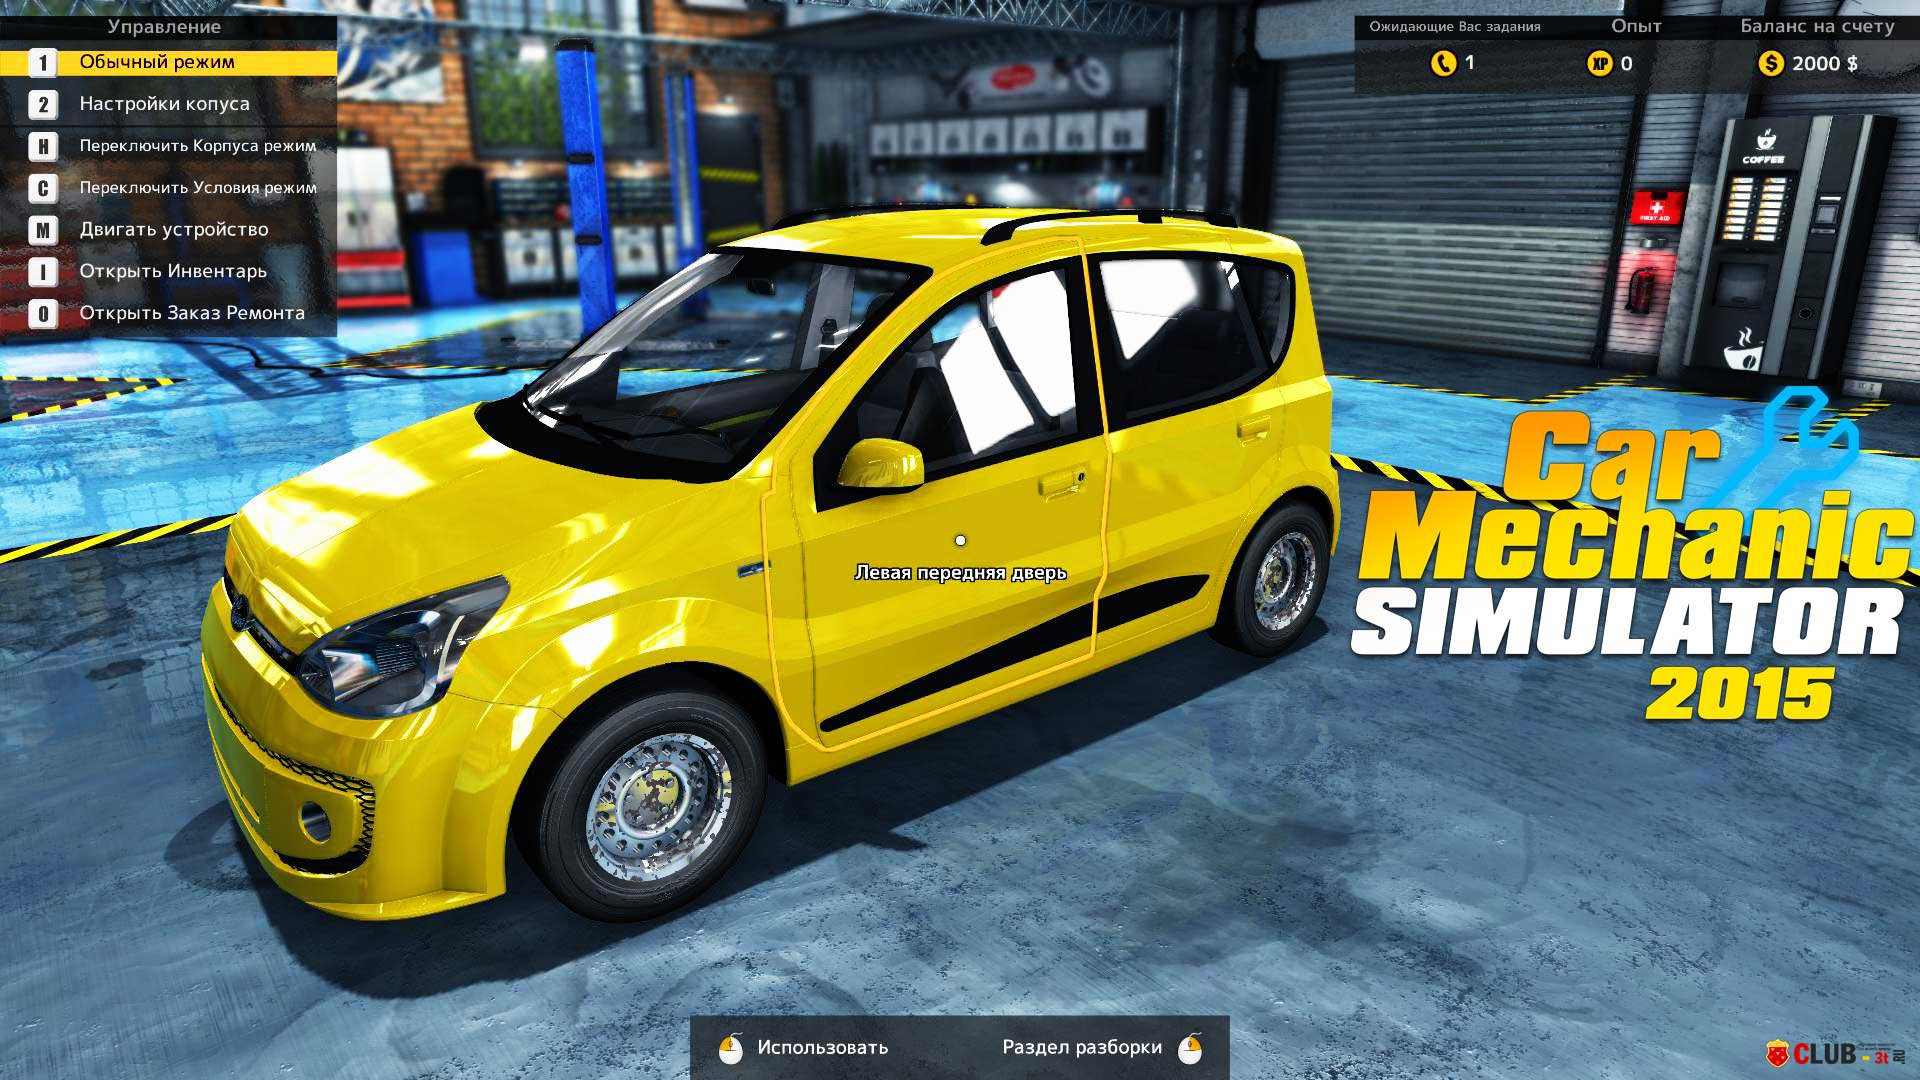 Car mechanic simulator 2015 trainer download